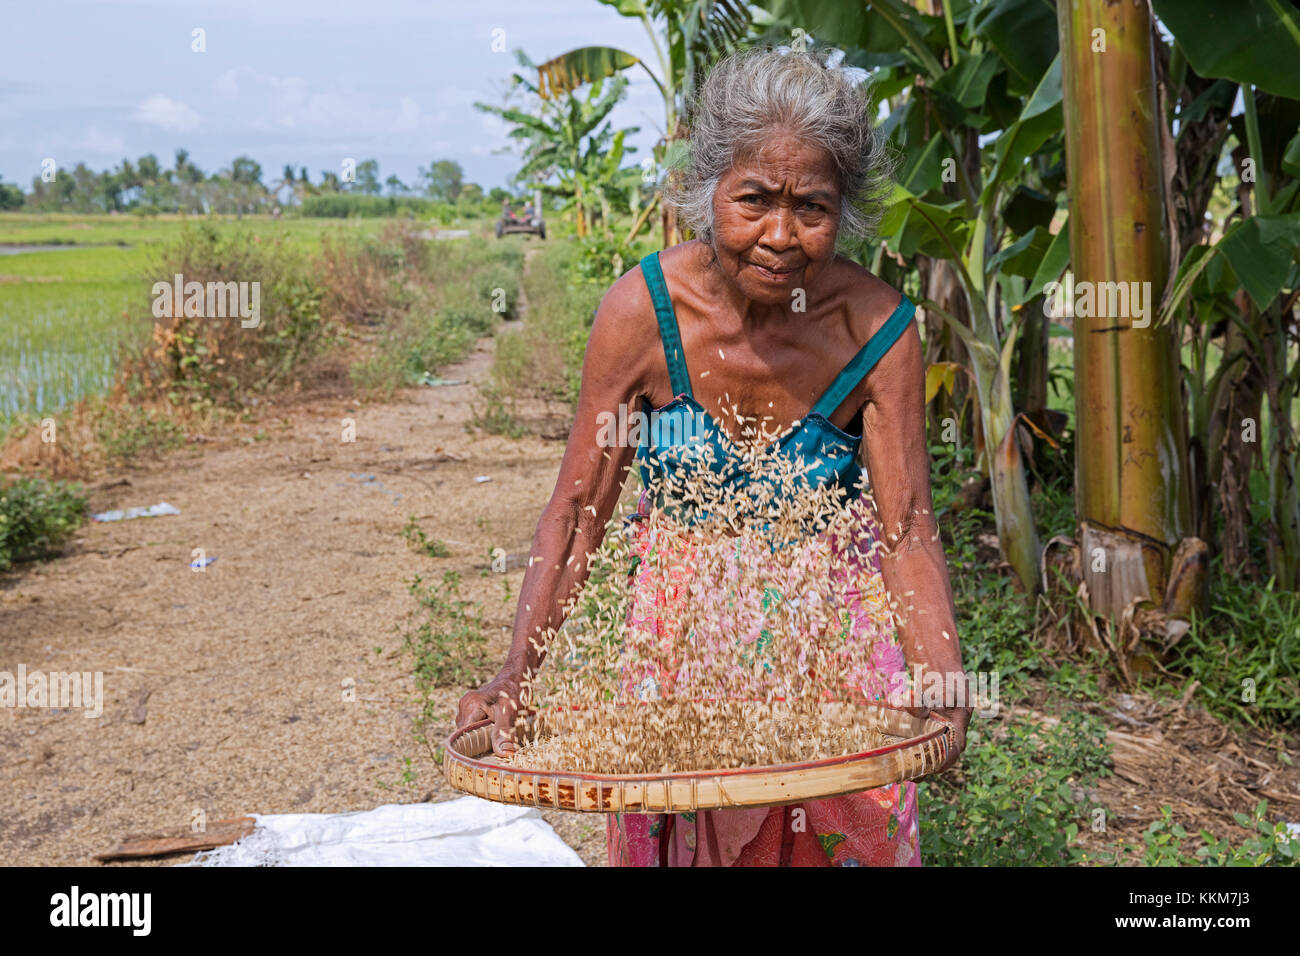 Elderly Indonesian woman sifting / winnowing rice seeds after harvesting at rice field on the island Lombok, Indonesia - Stock Image